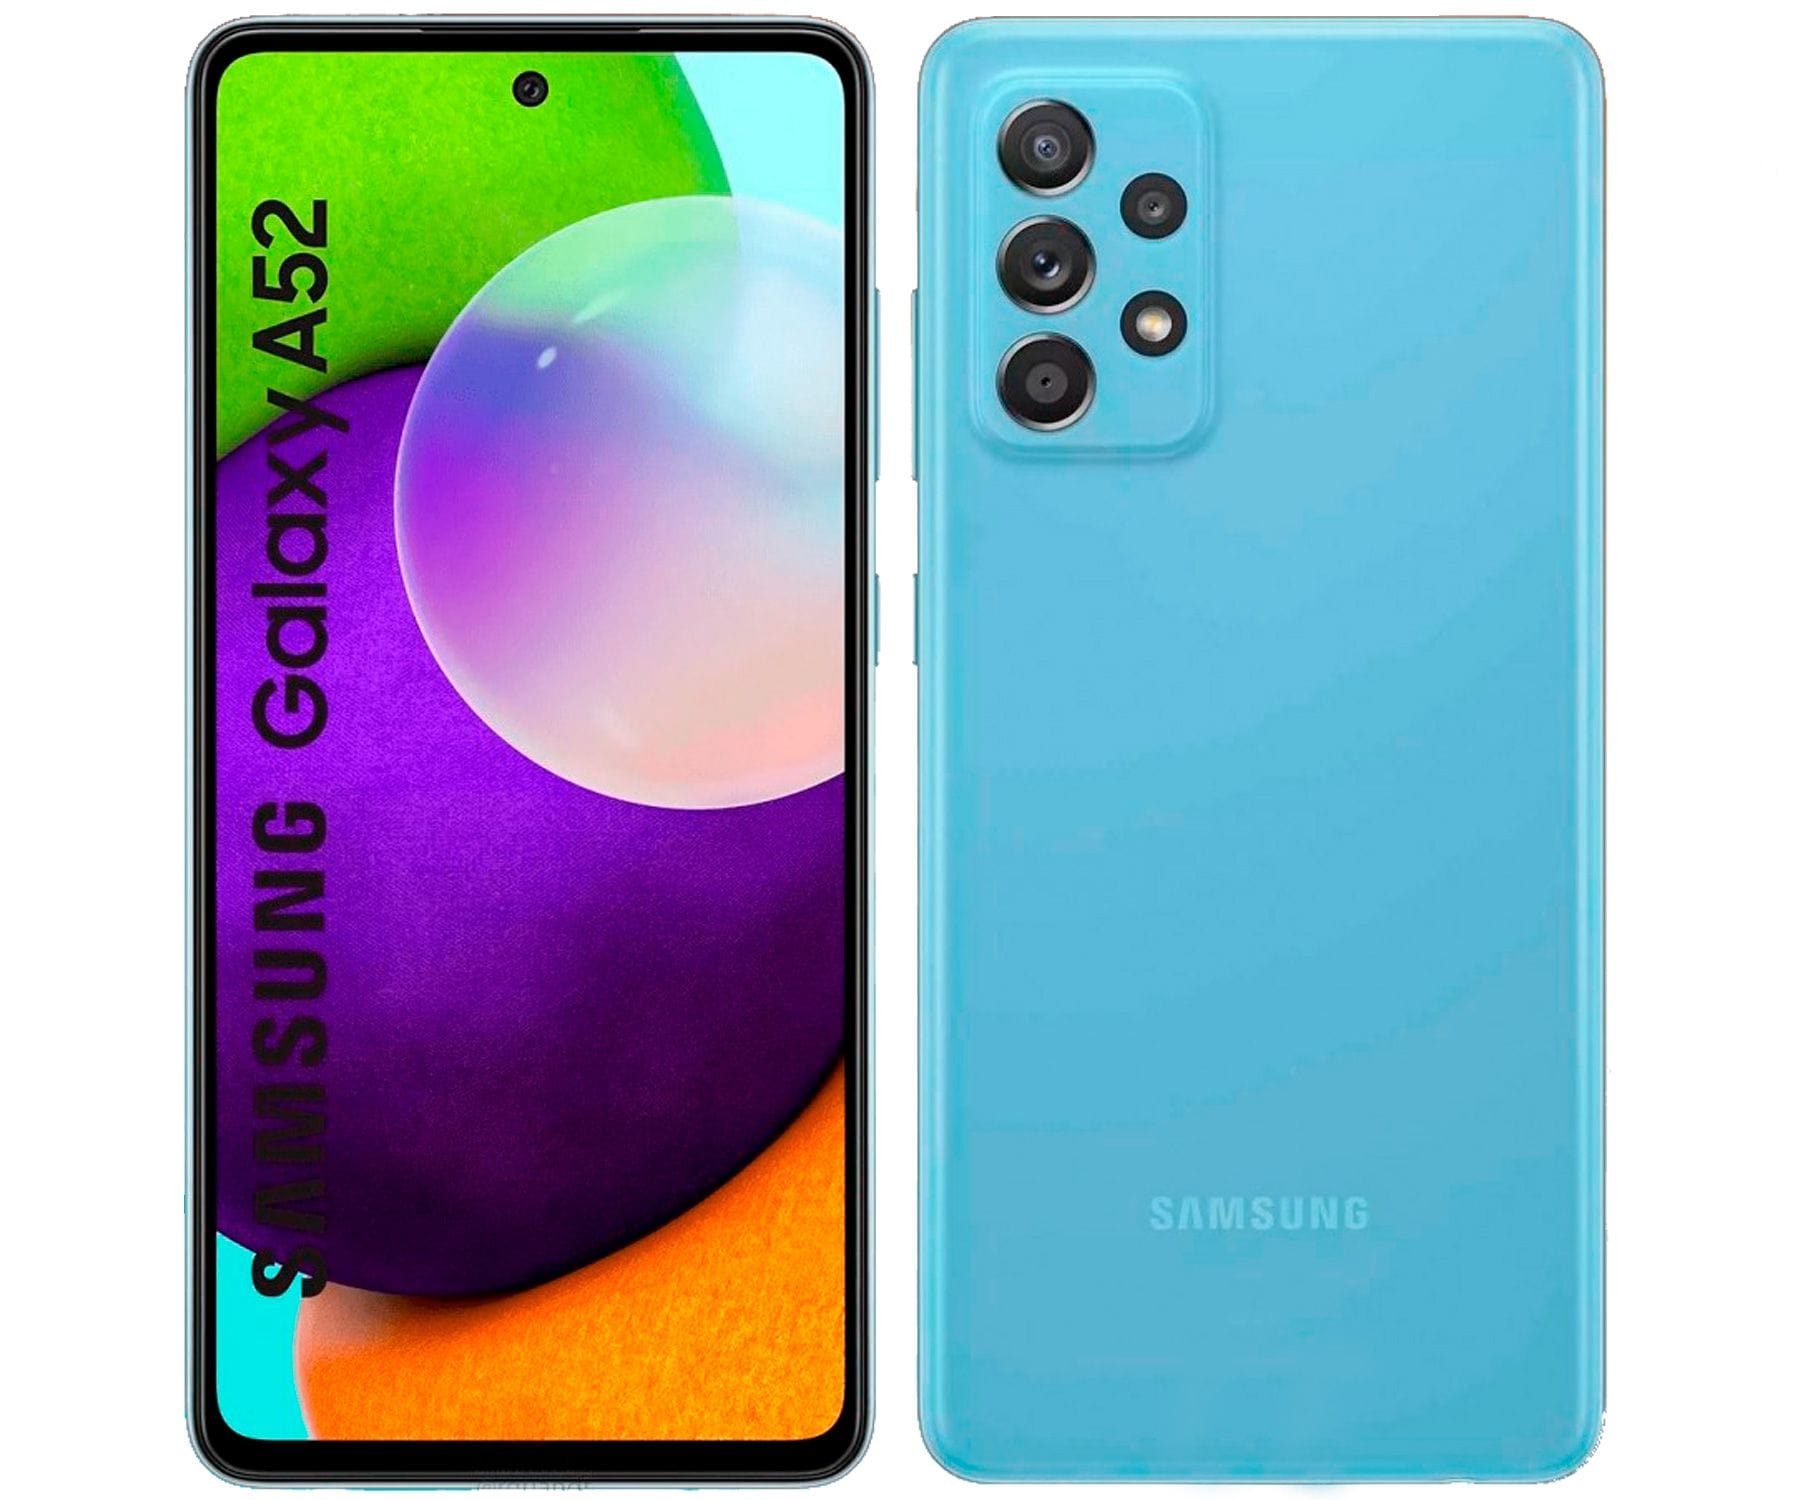 SAMSUNG GALAXY A52 AZUL MÓVIL 4G DUAL SIM 6.5'' 90Hz FHD+ OCTACORE 128GB 6GB RAM QUADCAM 64MP SELFIES 32MP